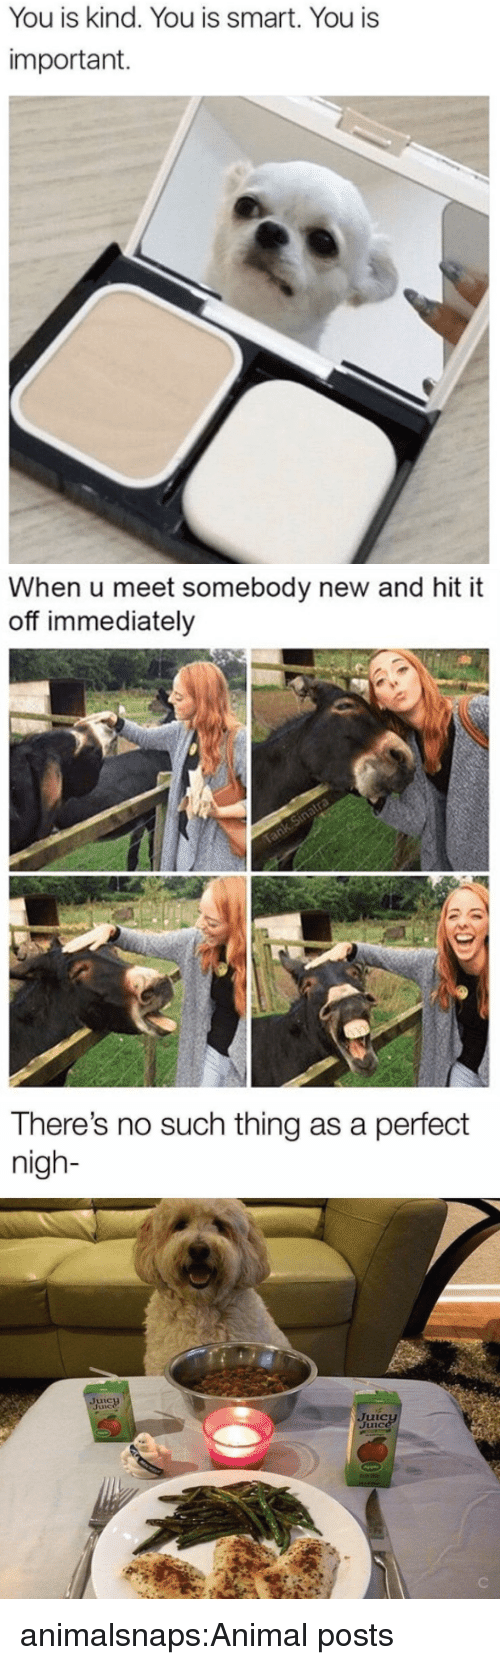 nigh: You is kind. You is smart. You is  important.   When u meet somebody new and hit it  off immediately   There's no such thing as a perfect  nigh- animalsnaps:Animal posts